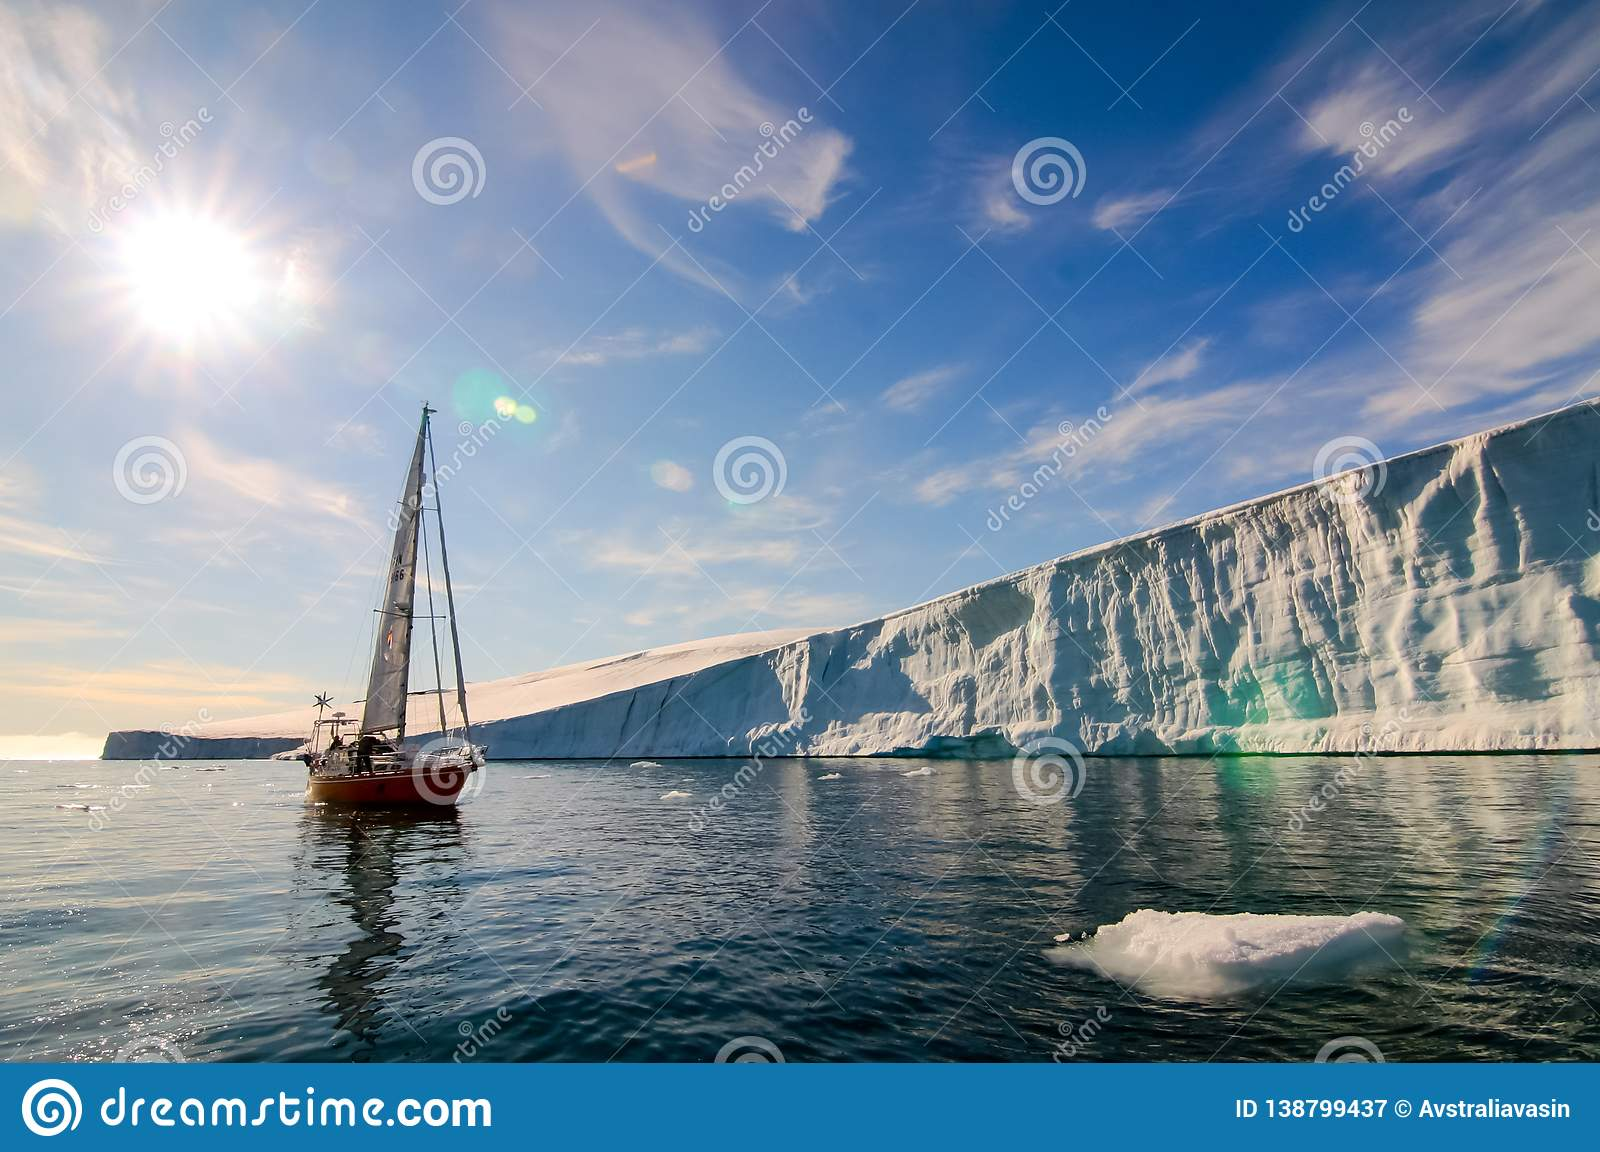 Vessel of the Arctic expedition in the waters of the Arctic Ocean